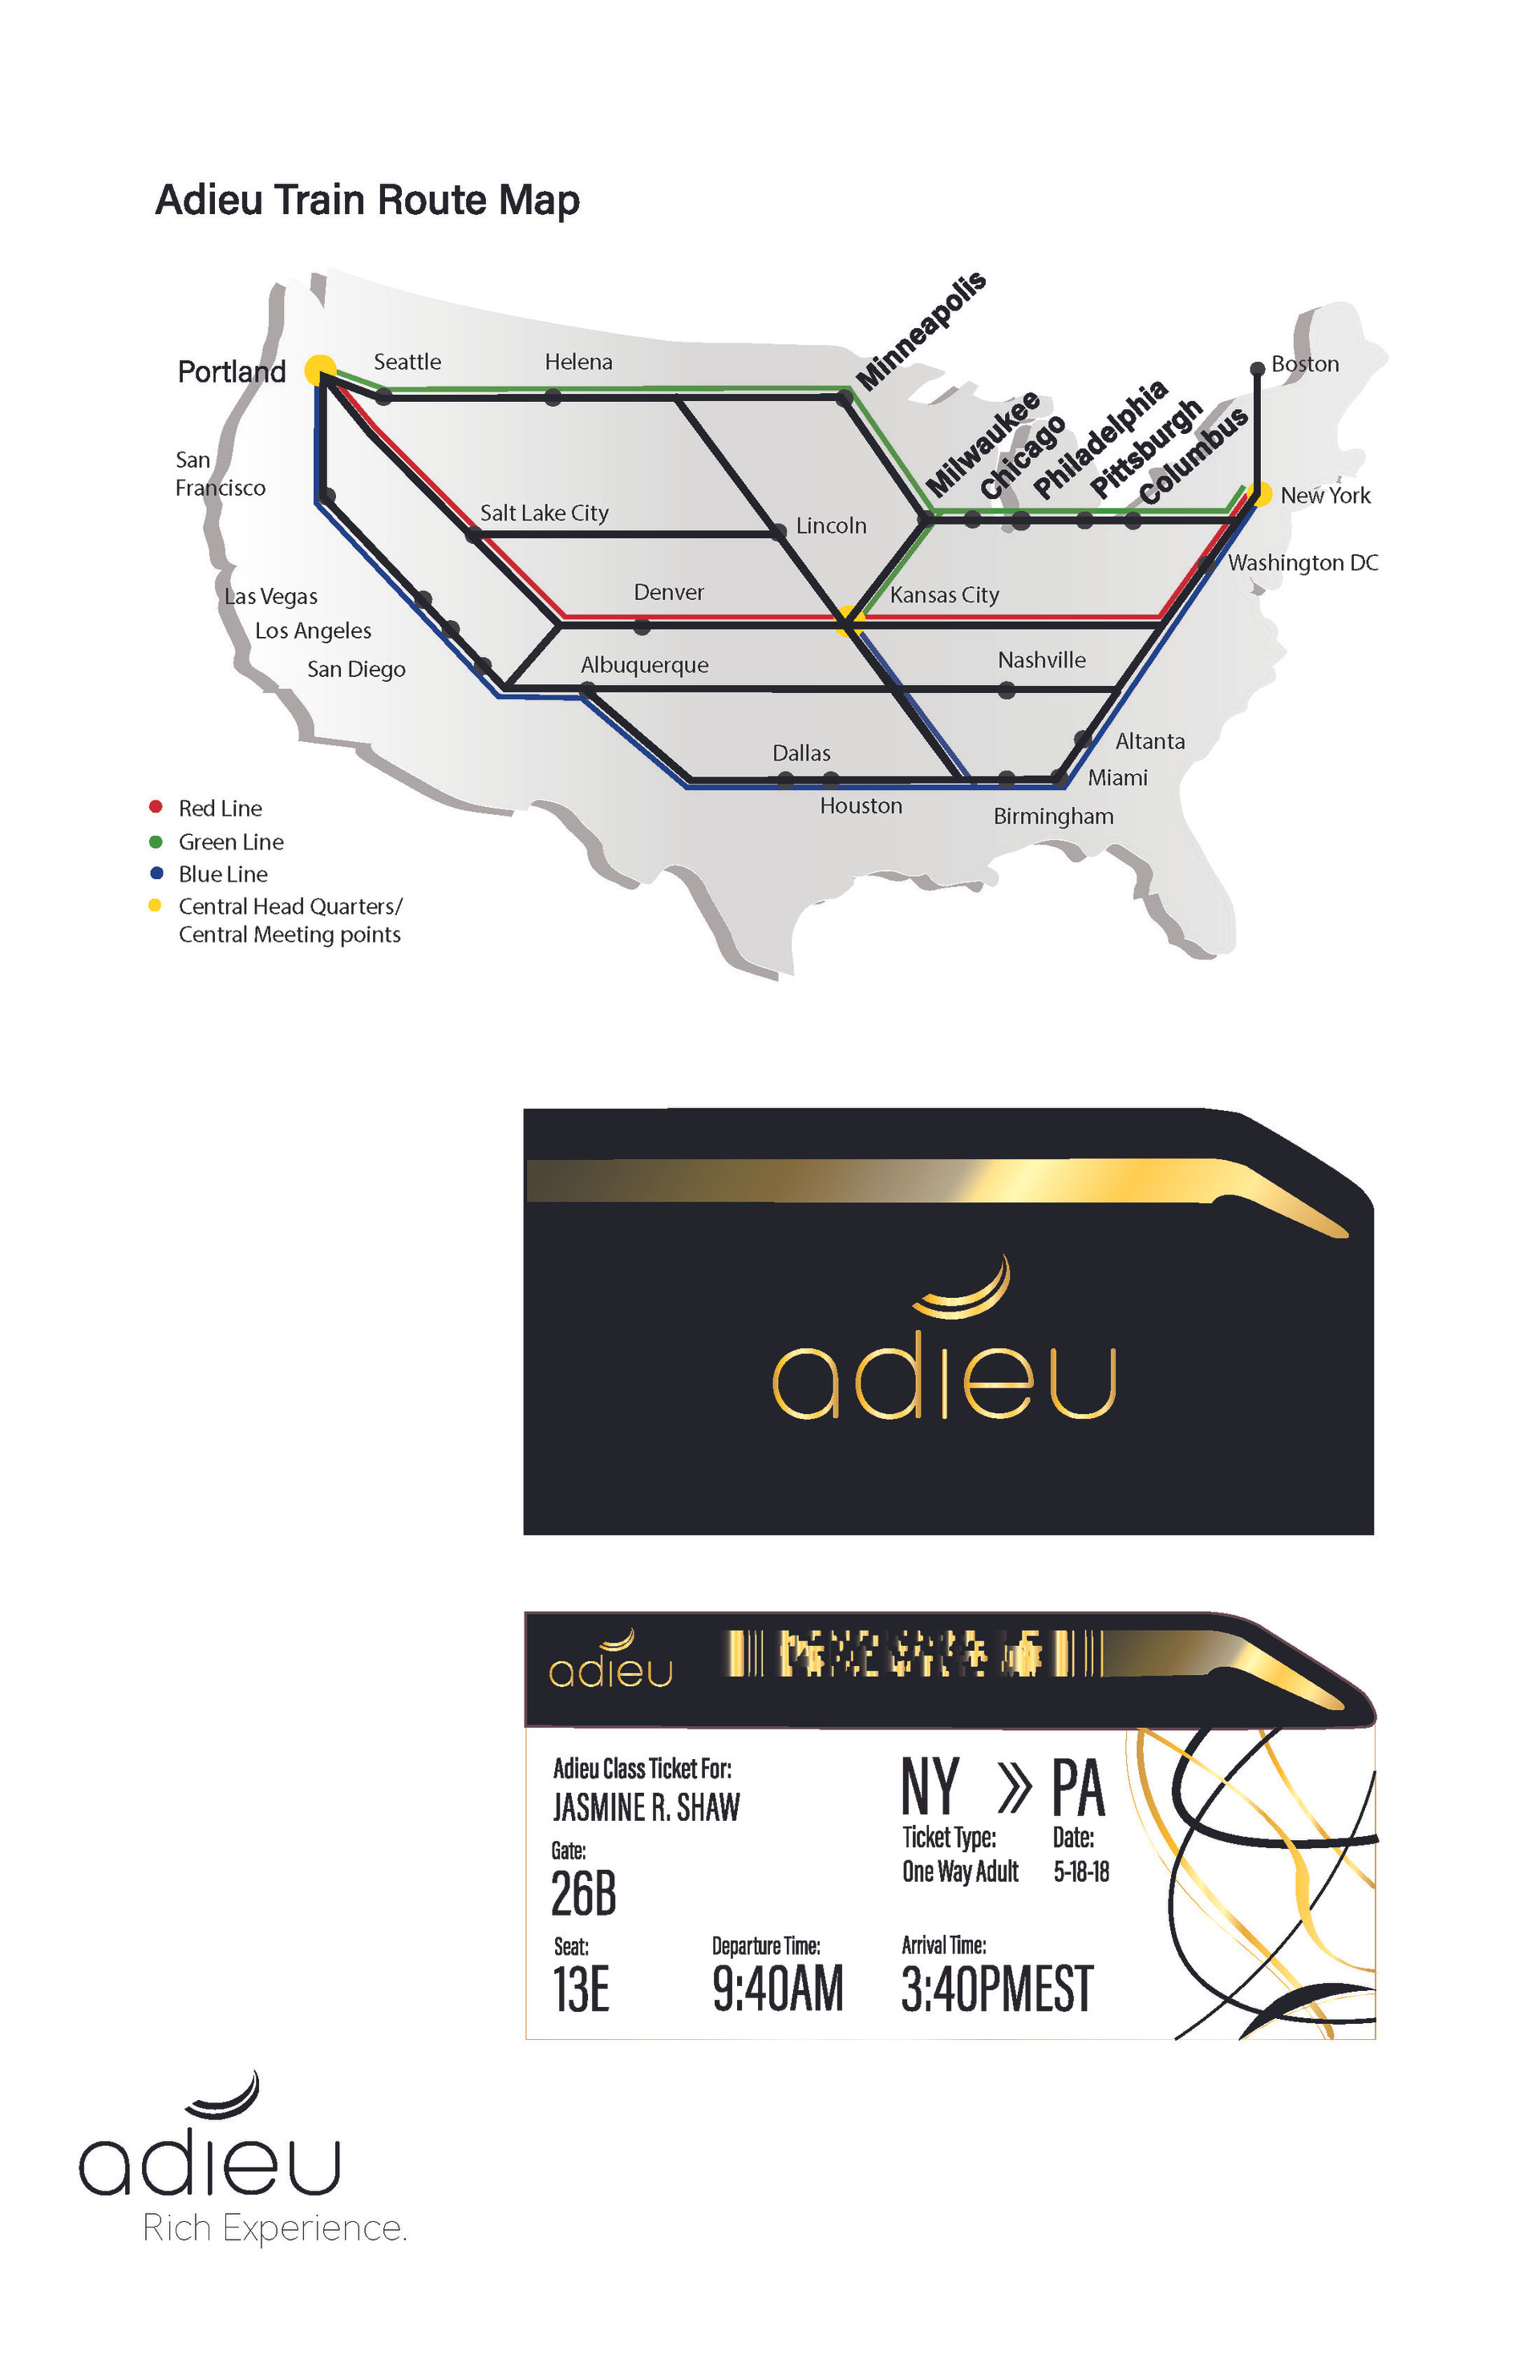 Map and Ticket